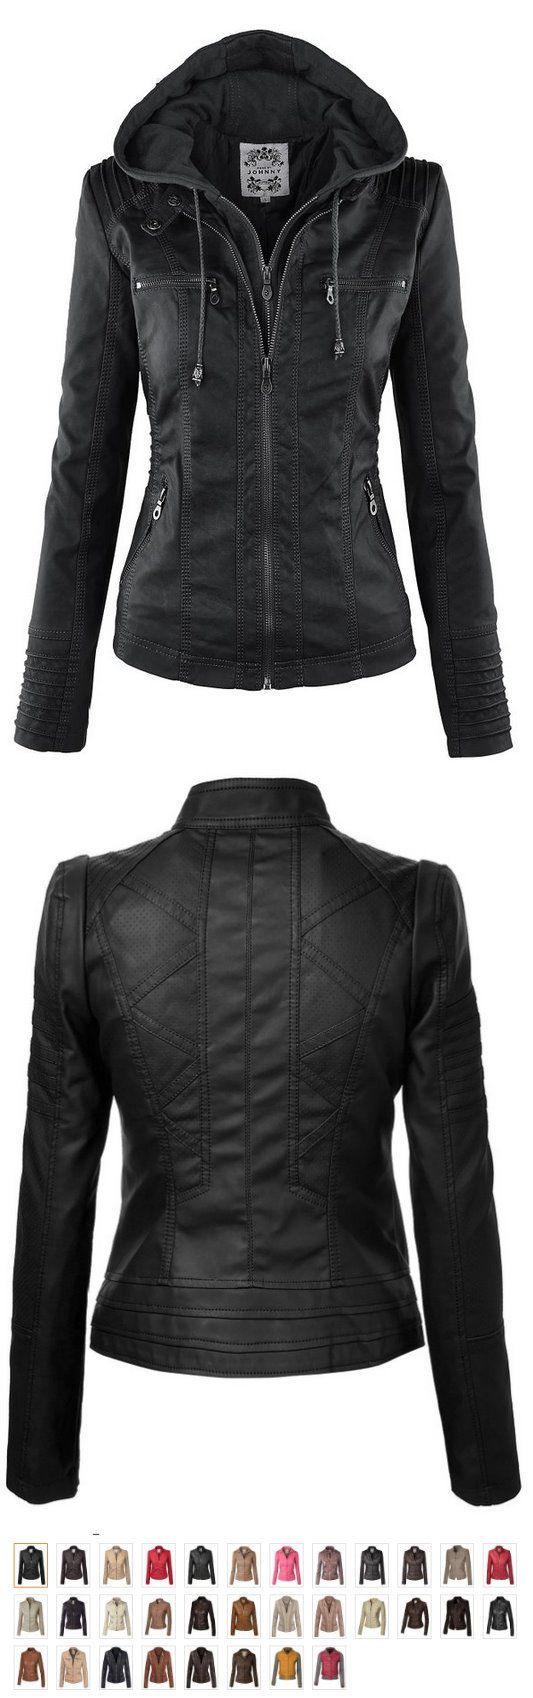 MBJ Womens Faux Leather Zip Up Moto Biker #Jacket With Stitching Detail ✮✮✮✮134 ctr. rvs.  100% POLYURETHANE(shell) 100% POLYESTER(lining) Medium weight faux lether jacket / Fully lined Exposed zipper details / Fully lined Detail stitching on front and back for style / Pockets on front for comfort HAND WASH COLD / HANG TO DRY / DO NOT IRON / DO NOT DRY CLEAN. https://twitter.com/TheMarketer2015/status/646230709061947392